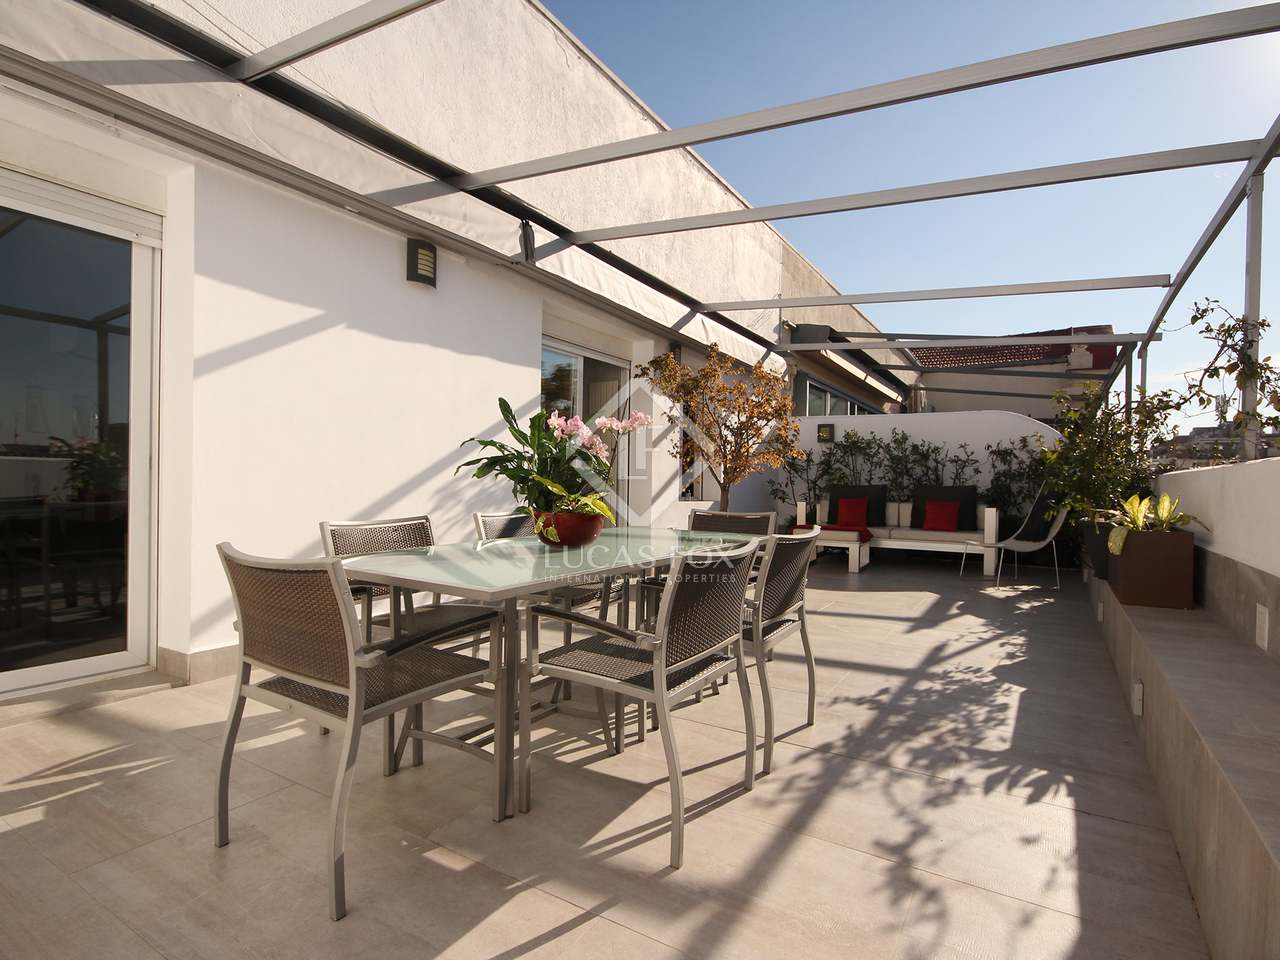 125 m apartment with 45 m terrace for rent in salamanca for 125 the terrace